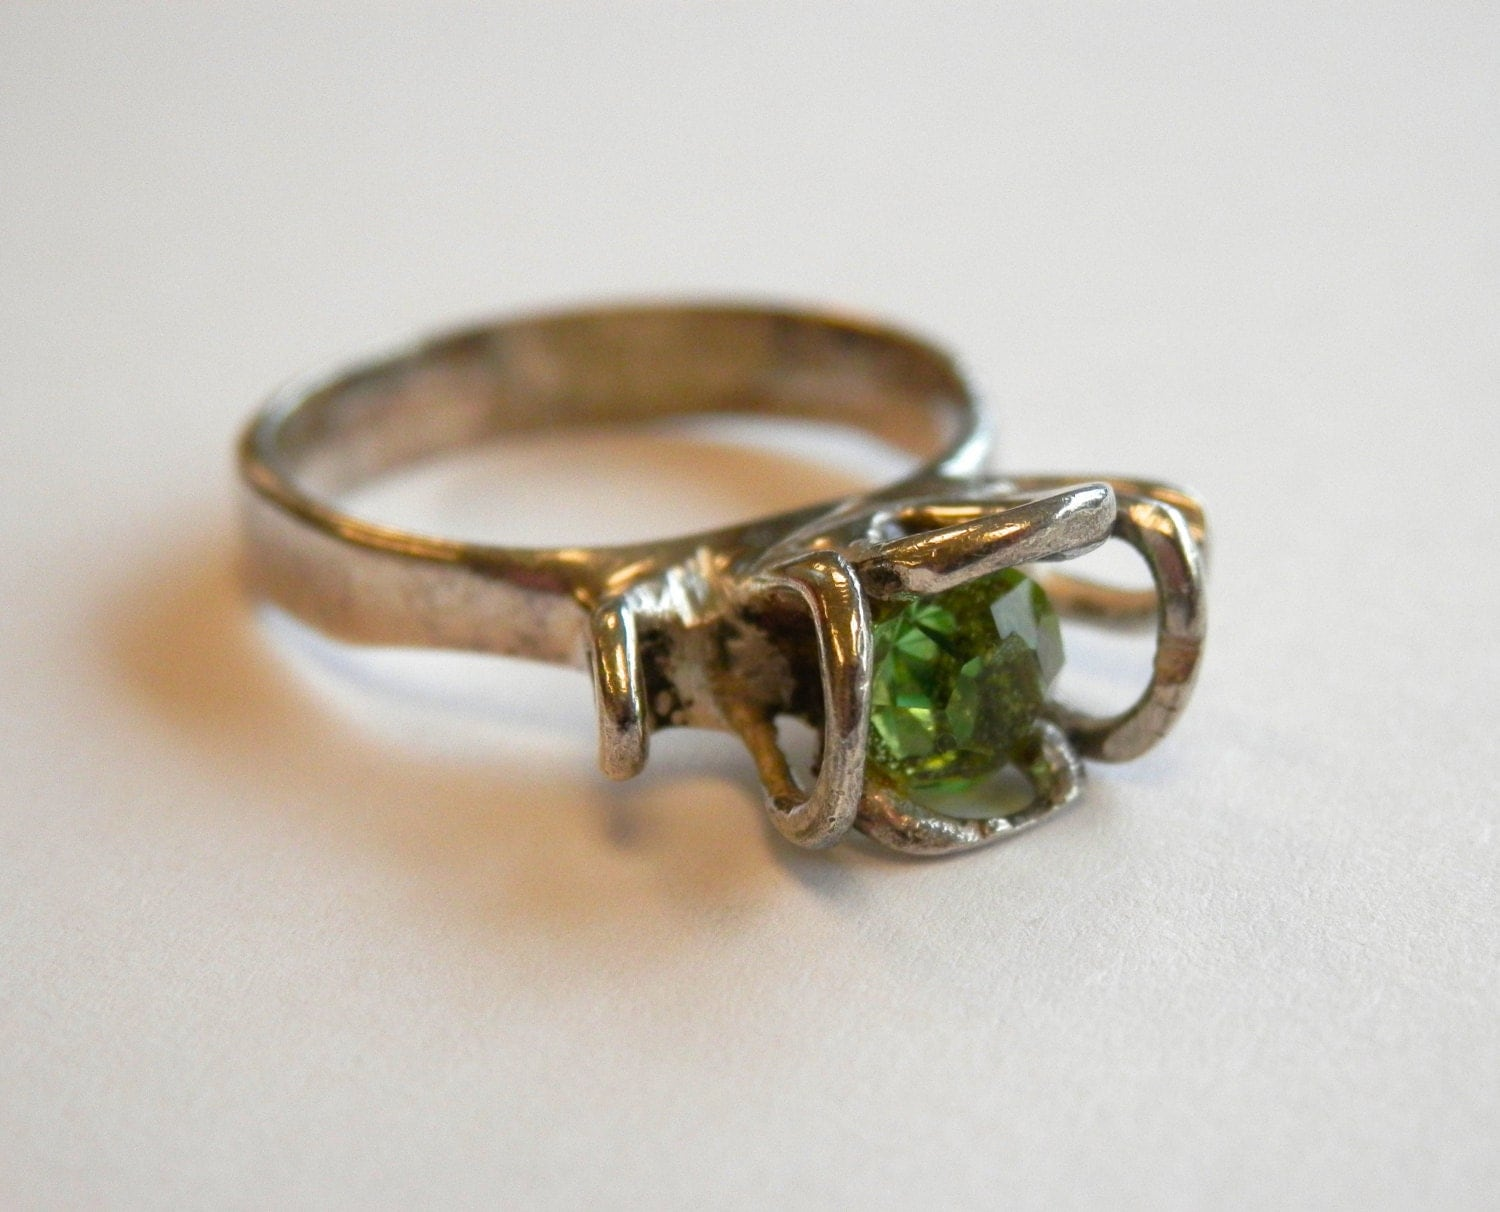 vintage peridot ring handmade sterling silver by